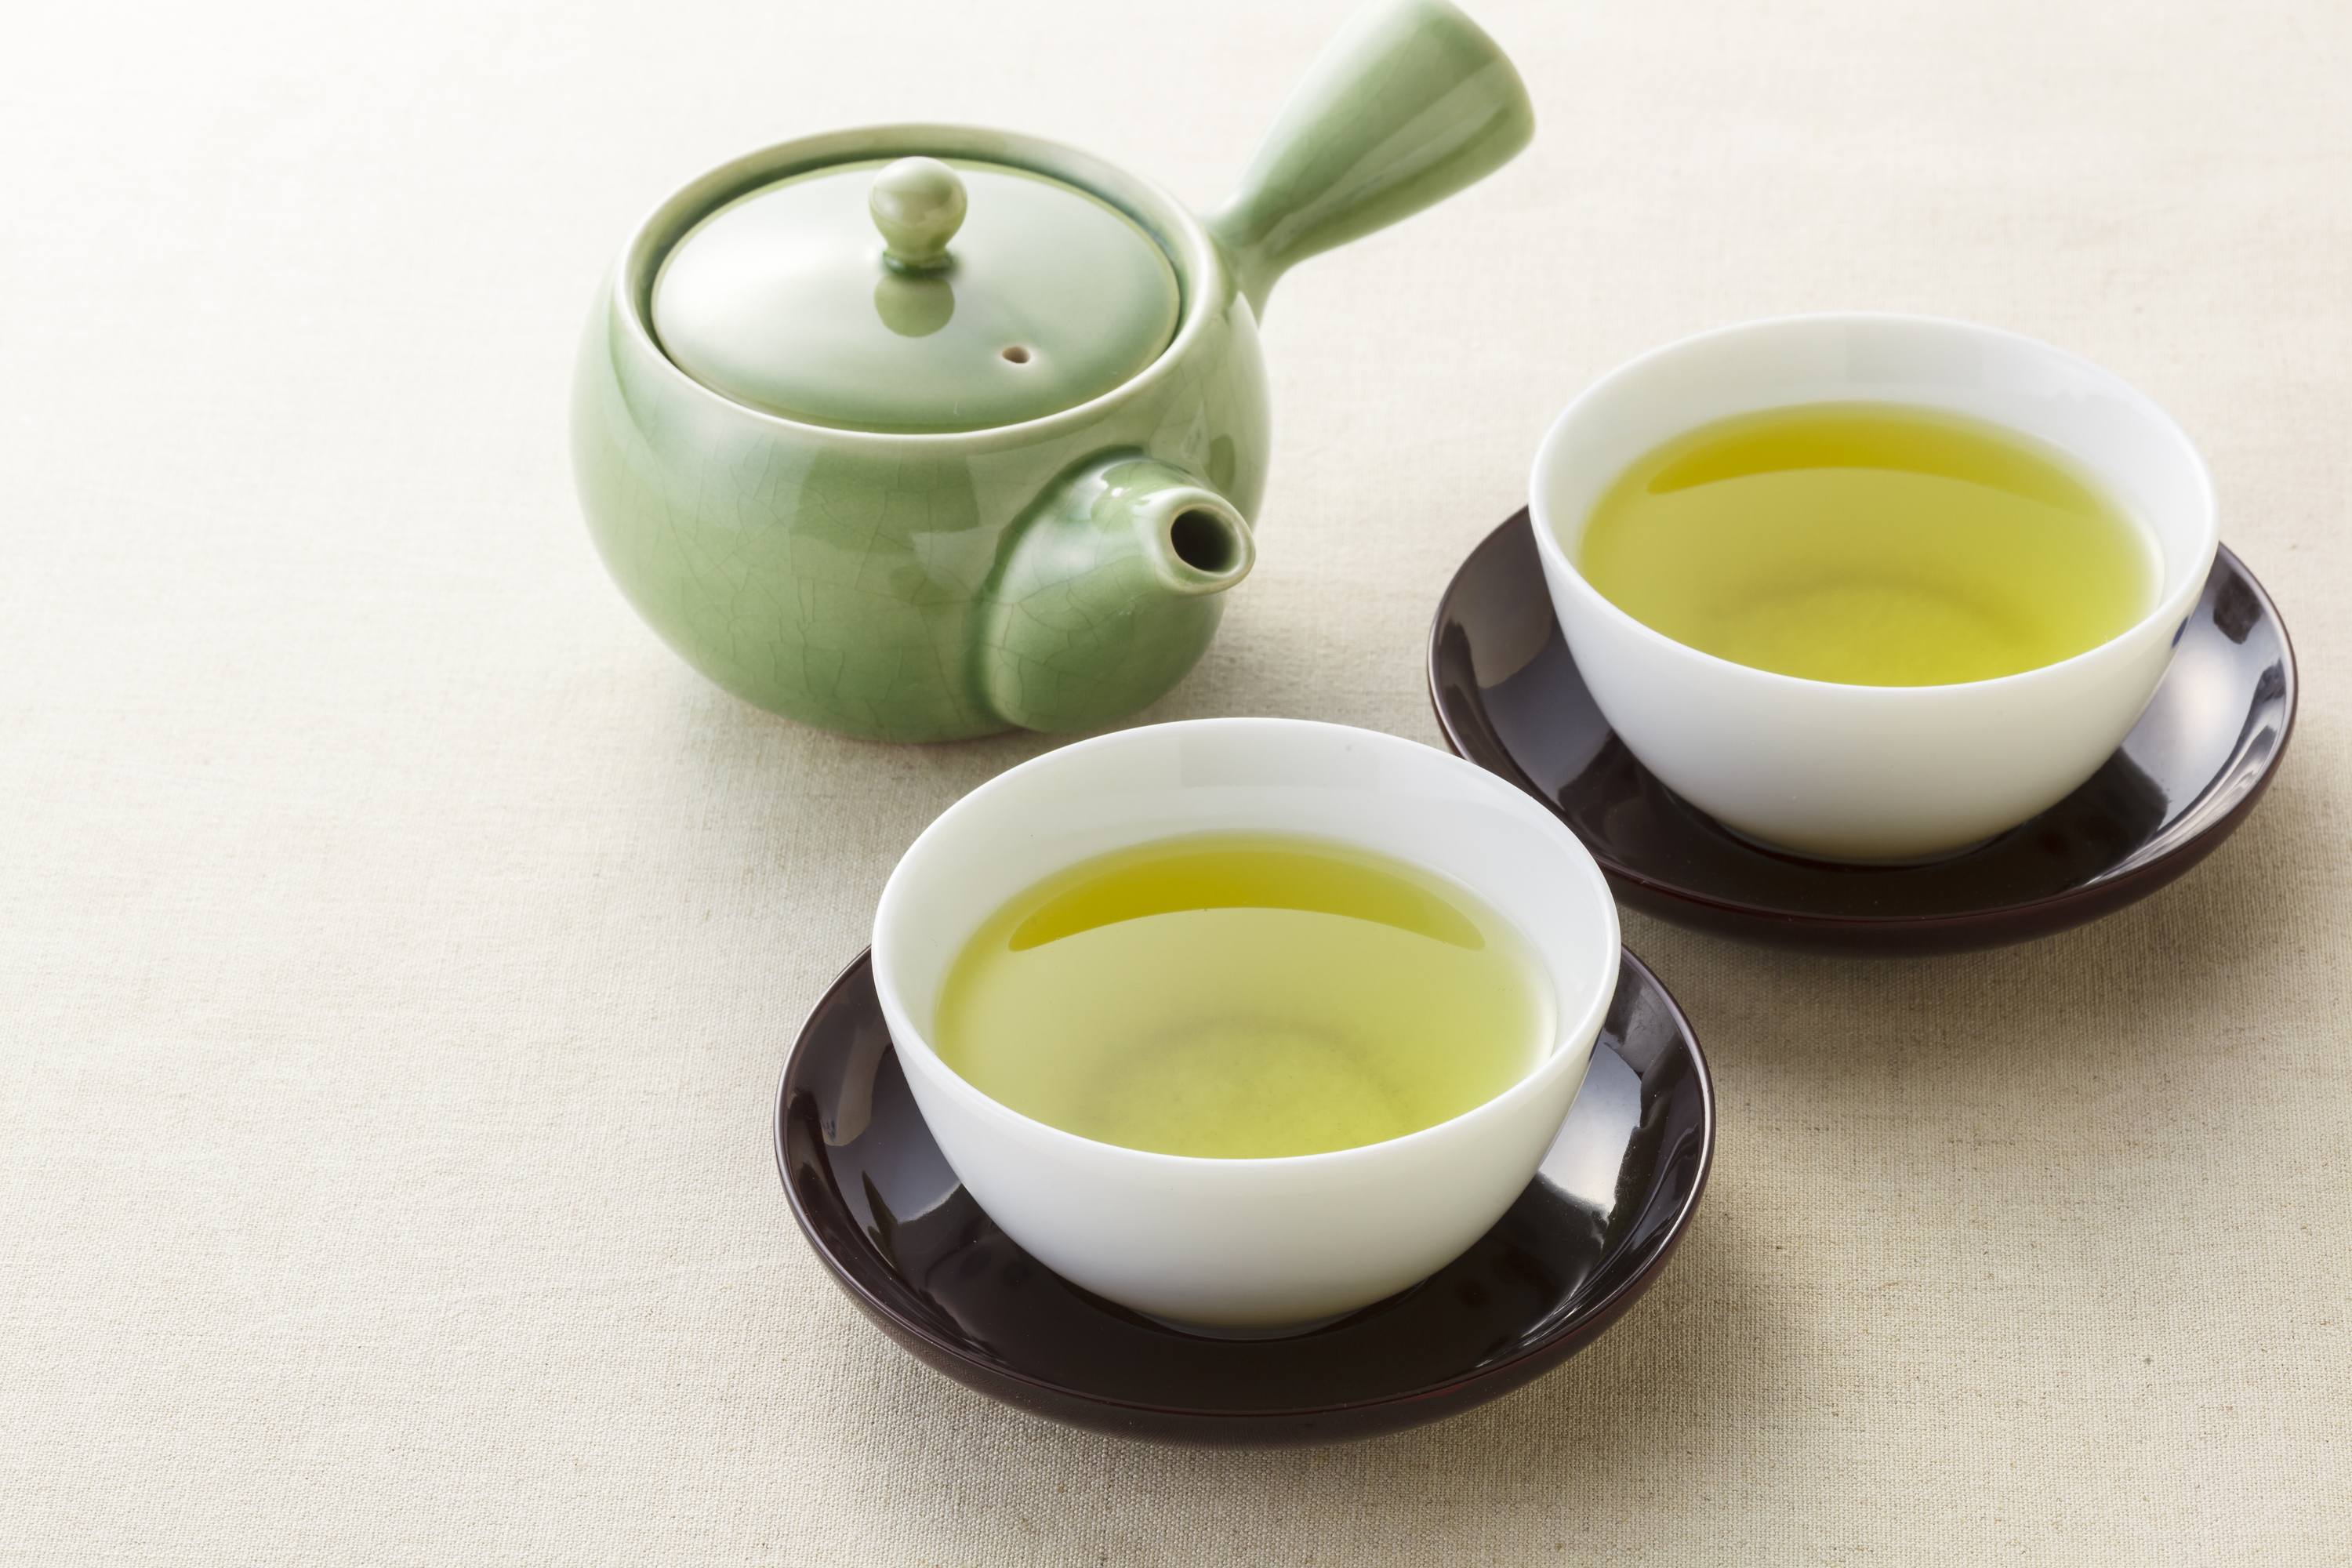 There's nothing better than a good cup on green tea. It does so much good for your body. These green tea recipes are so delicious. You need to give them a try!